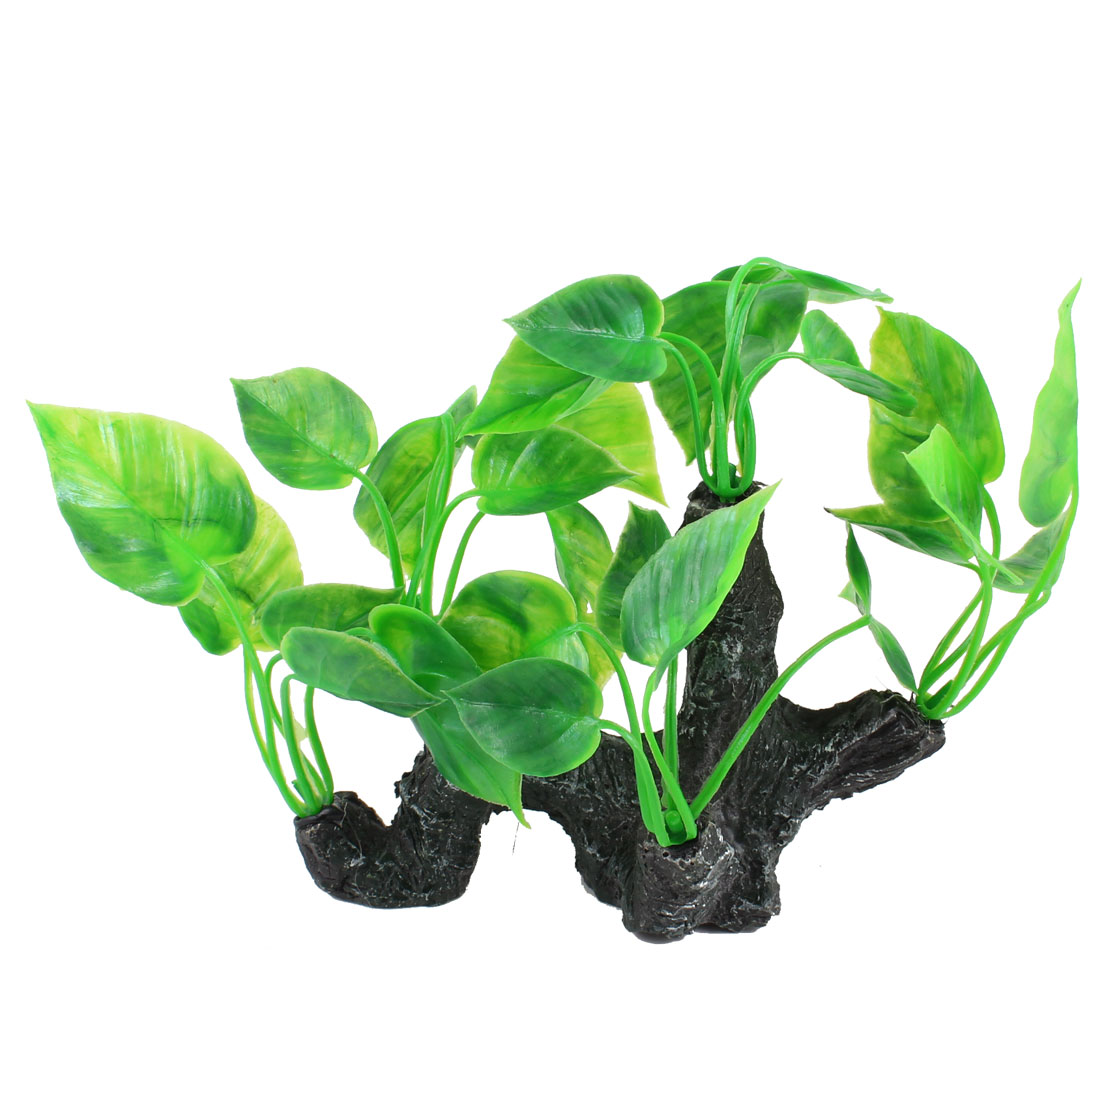 "Fish Tank Ceramic Rockery Plastic Leaves Decor Aquascaping Black Green 5.1"" Height"